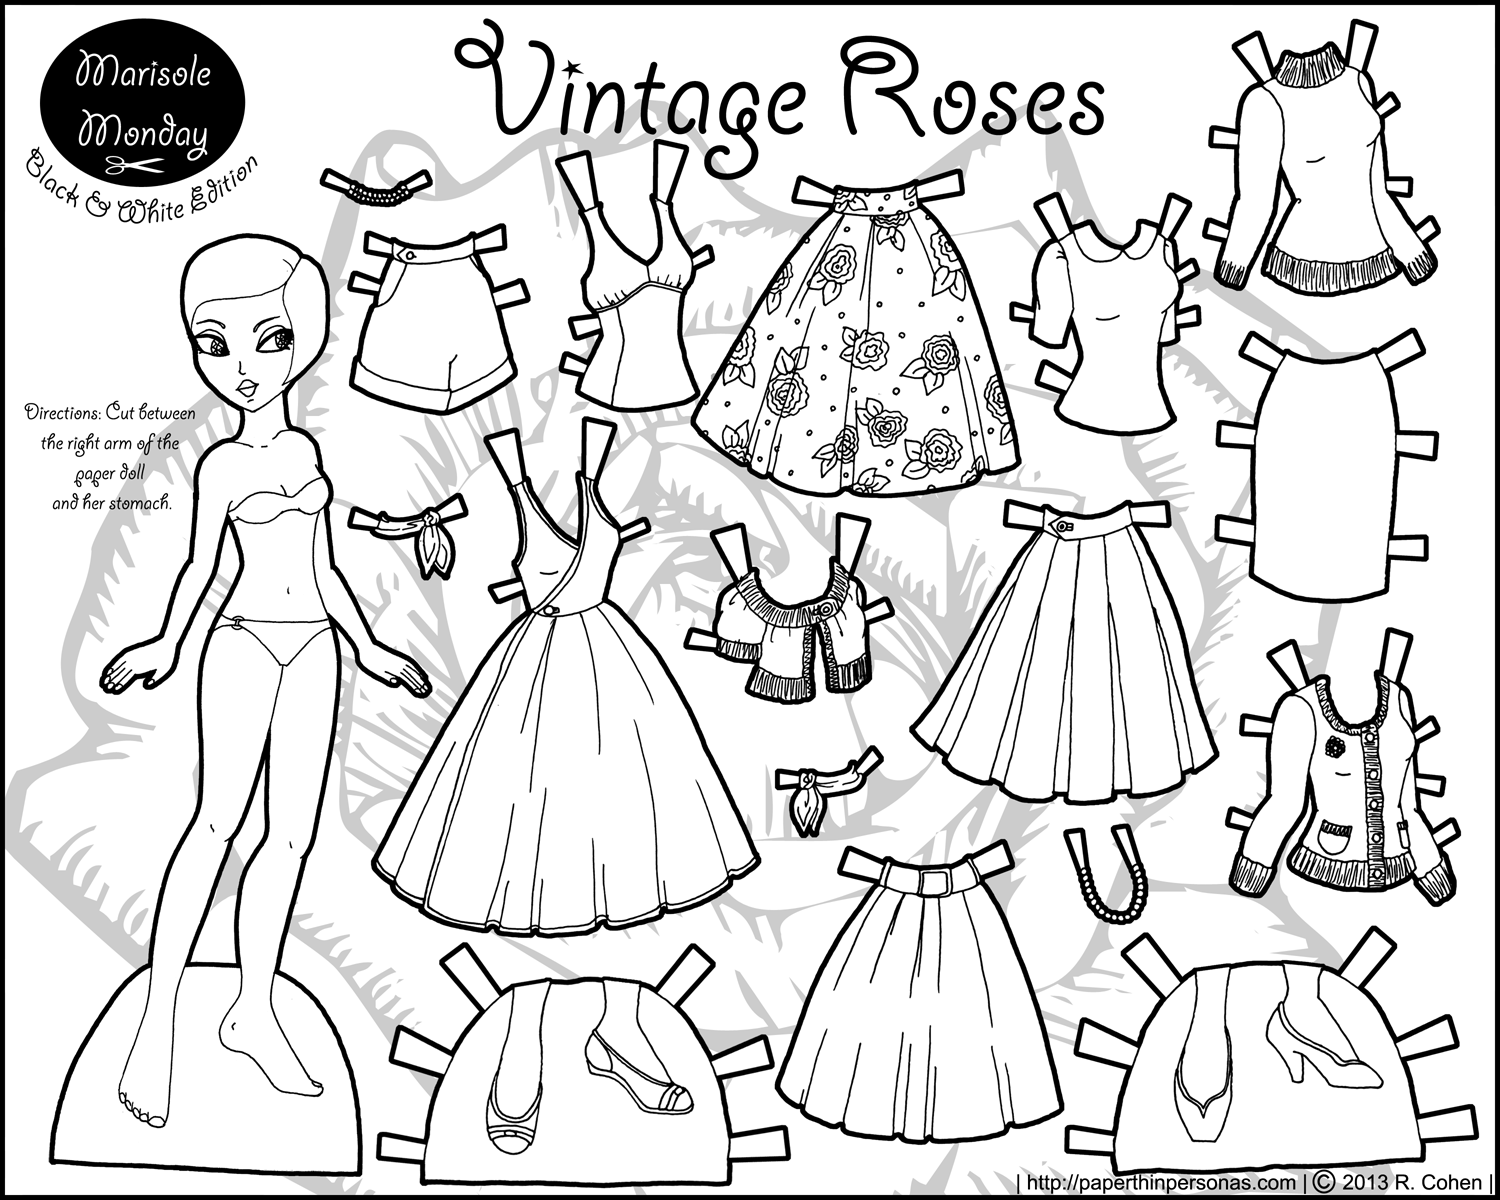 dress up dolls printable marisole monday vintage roses paper thin personas printable dolls dress up